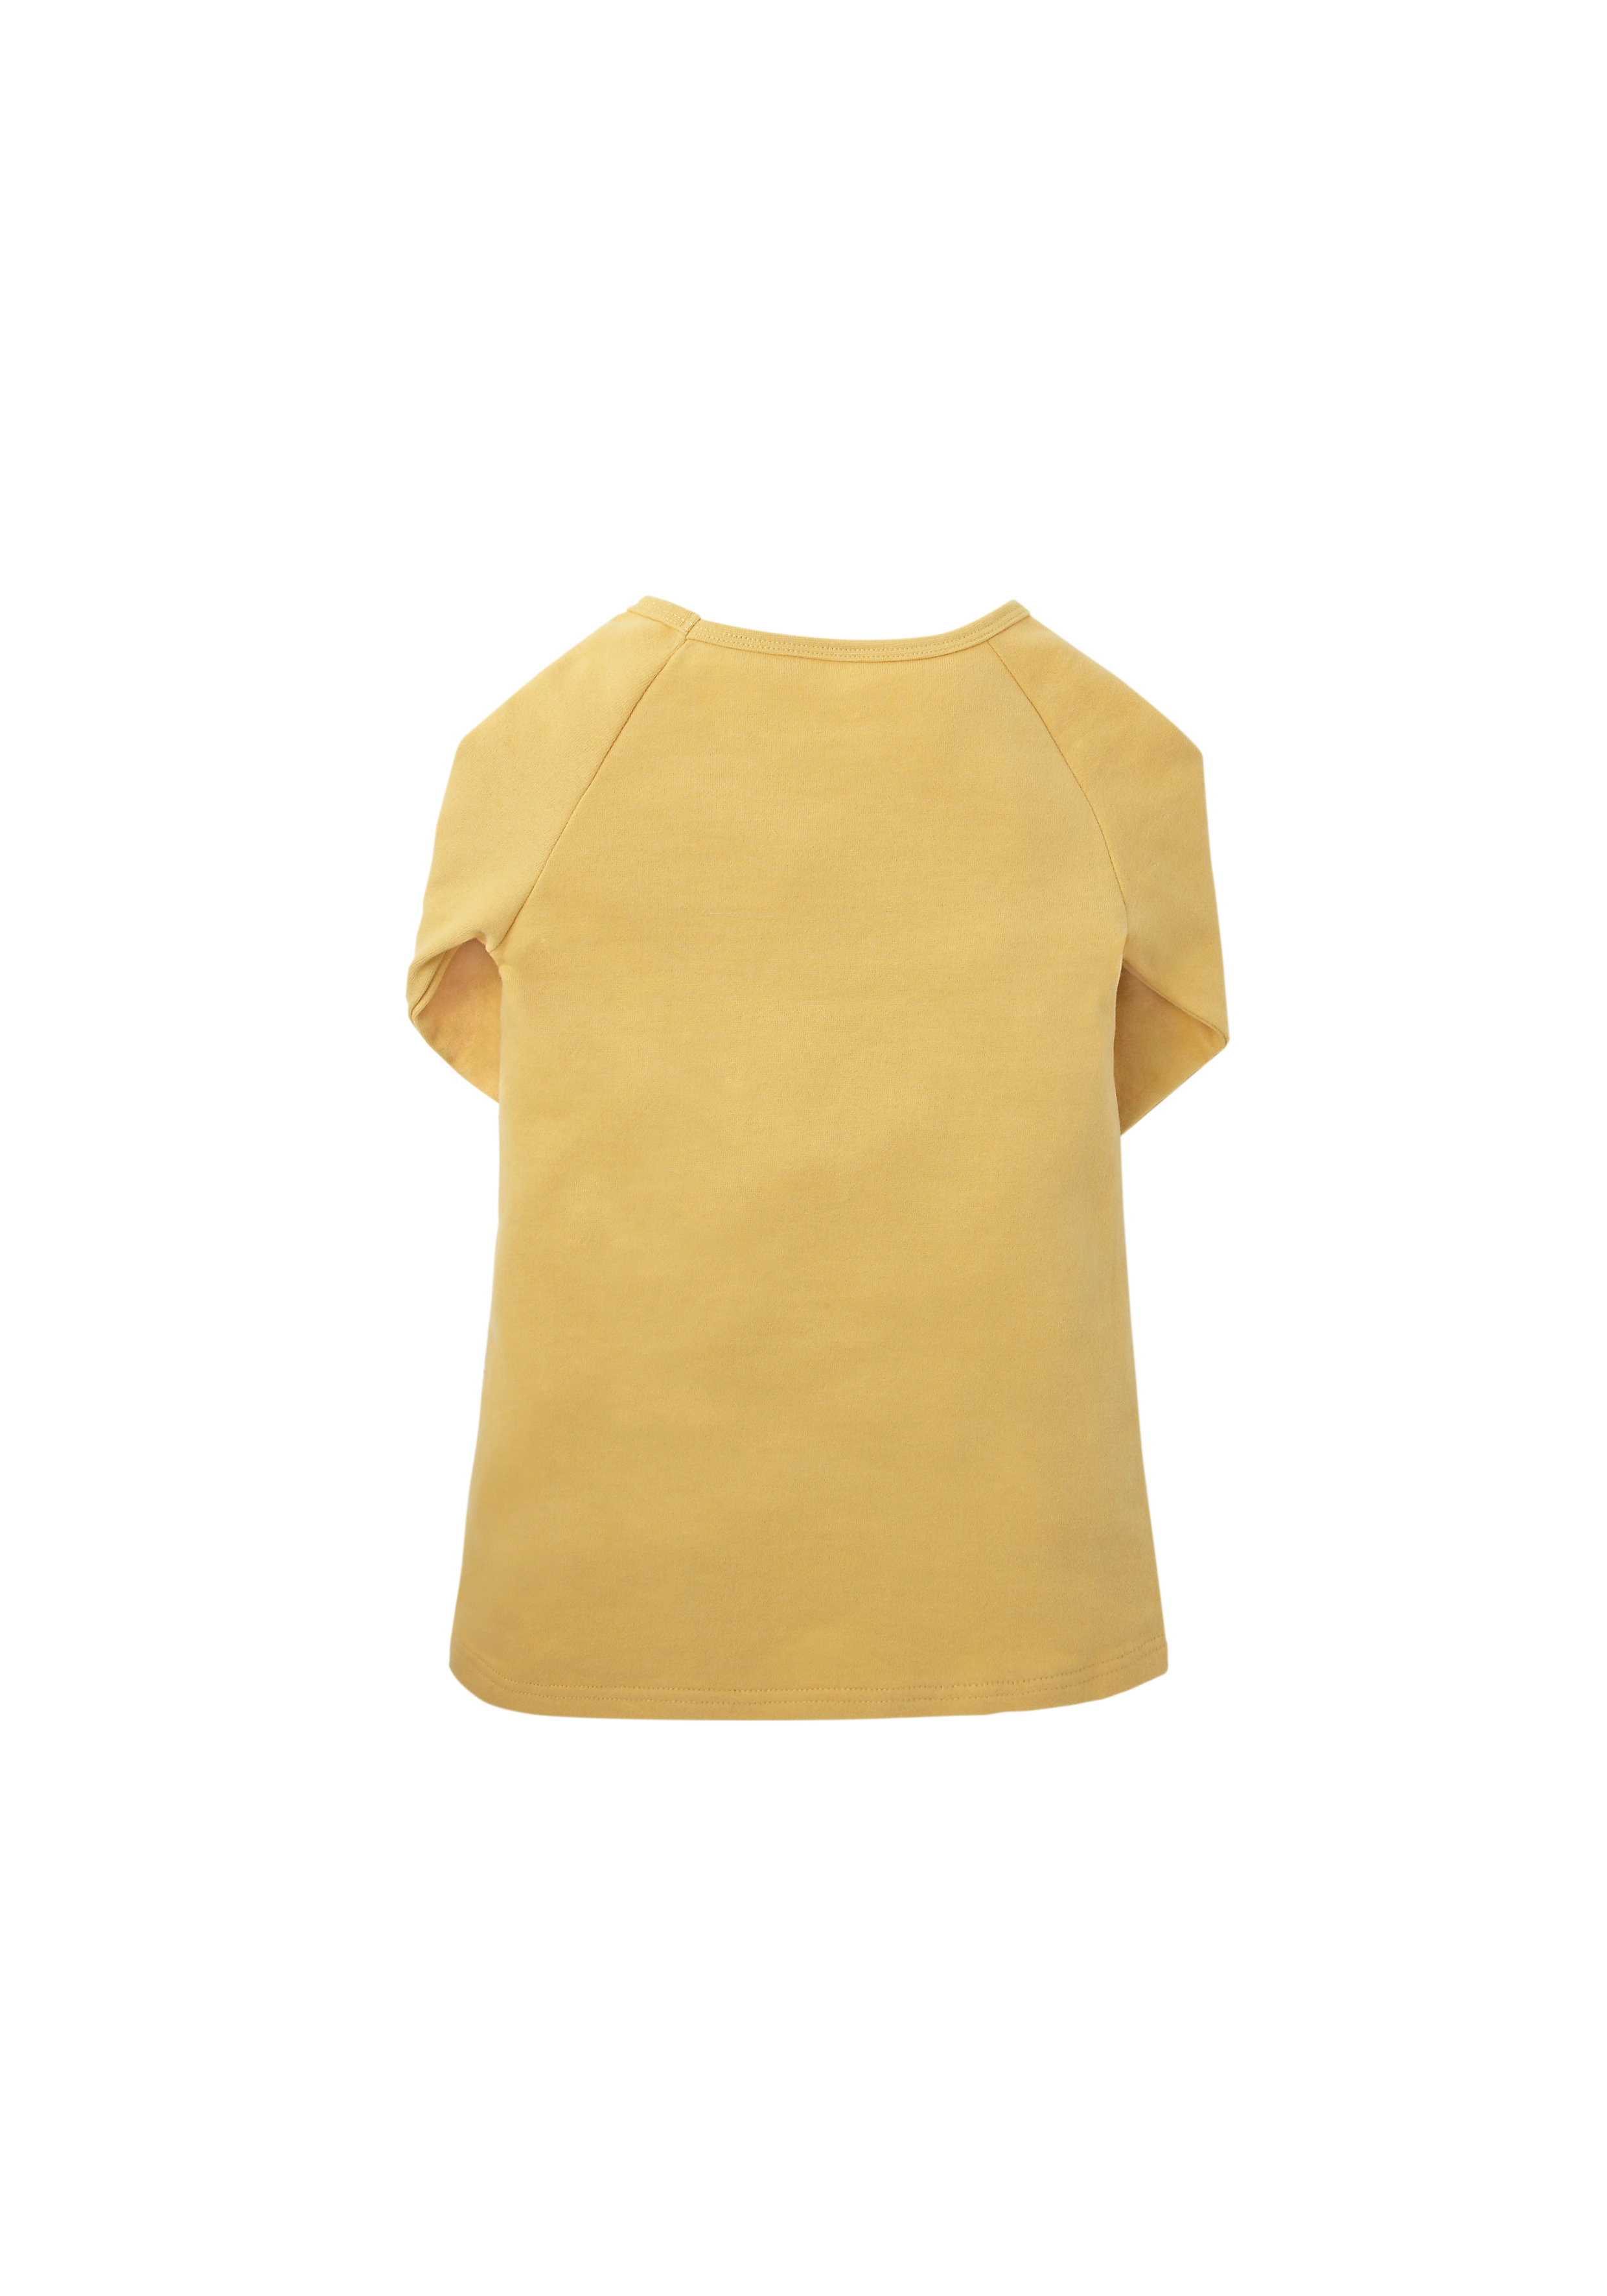 Mothercare | Girls Floral Dress - Yellow